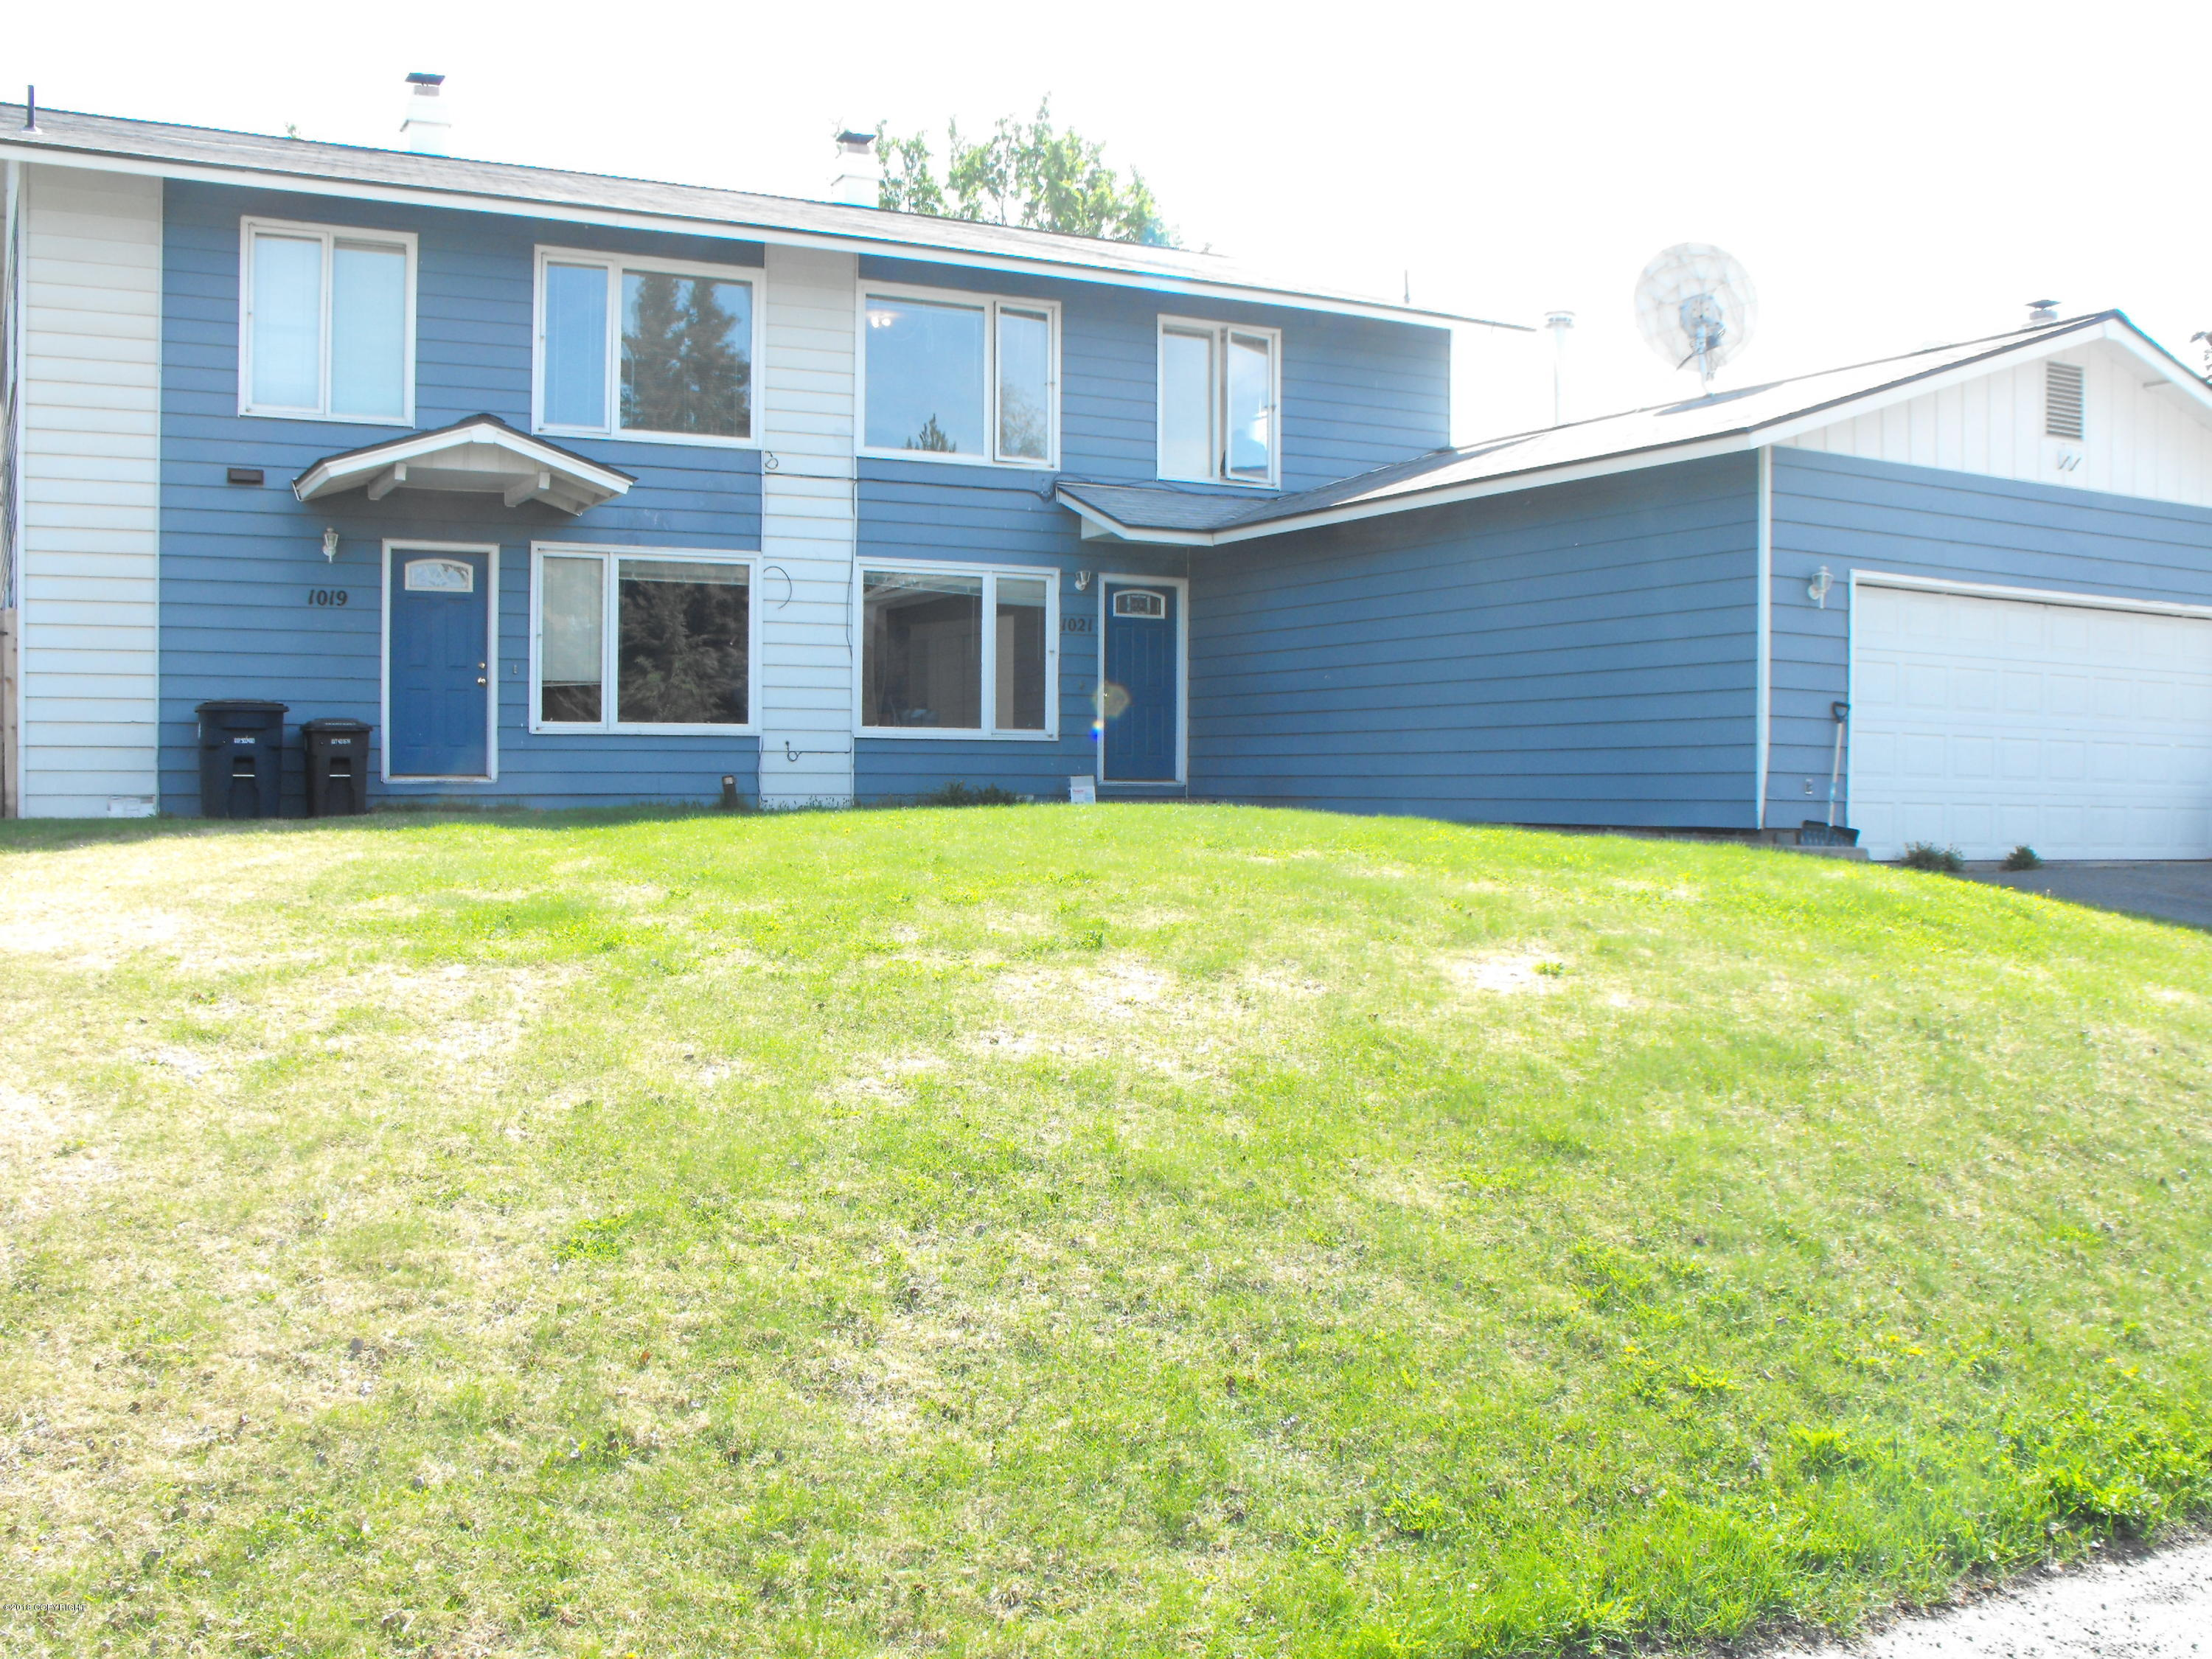 1019 Mila Street Anchorage Home Listings - Soquet Realty, Inc. Anchorage Real Estate